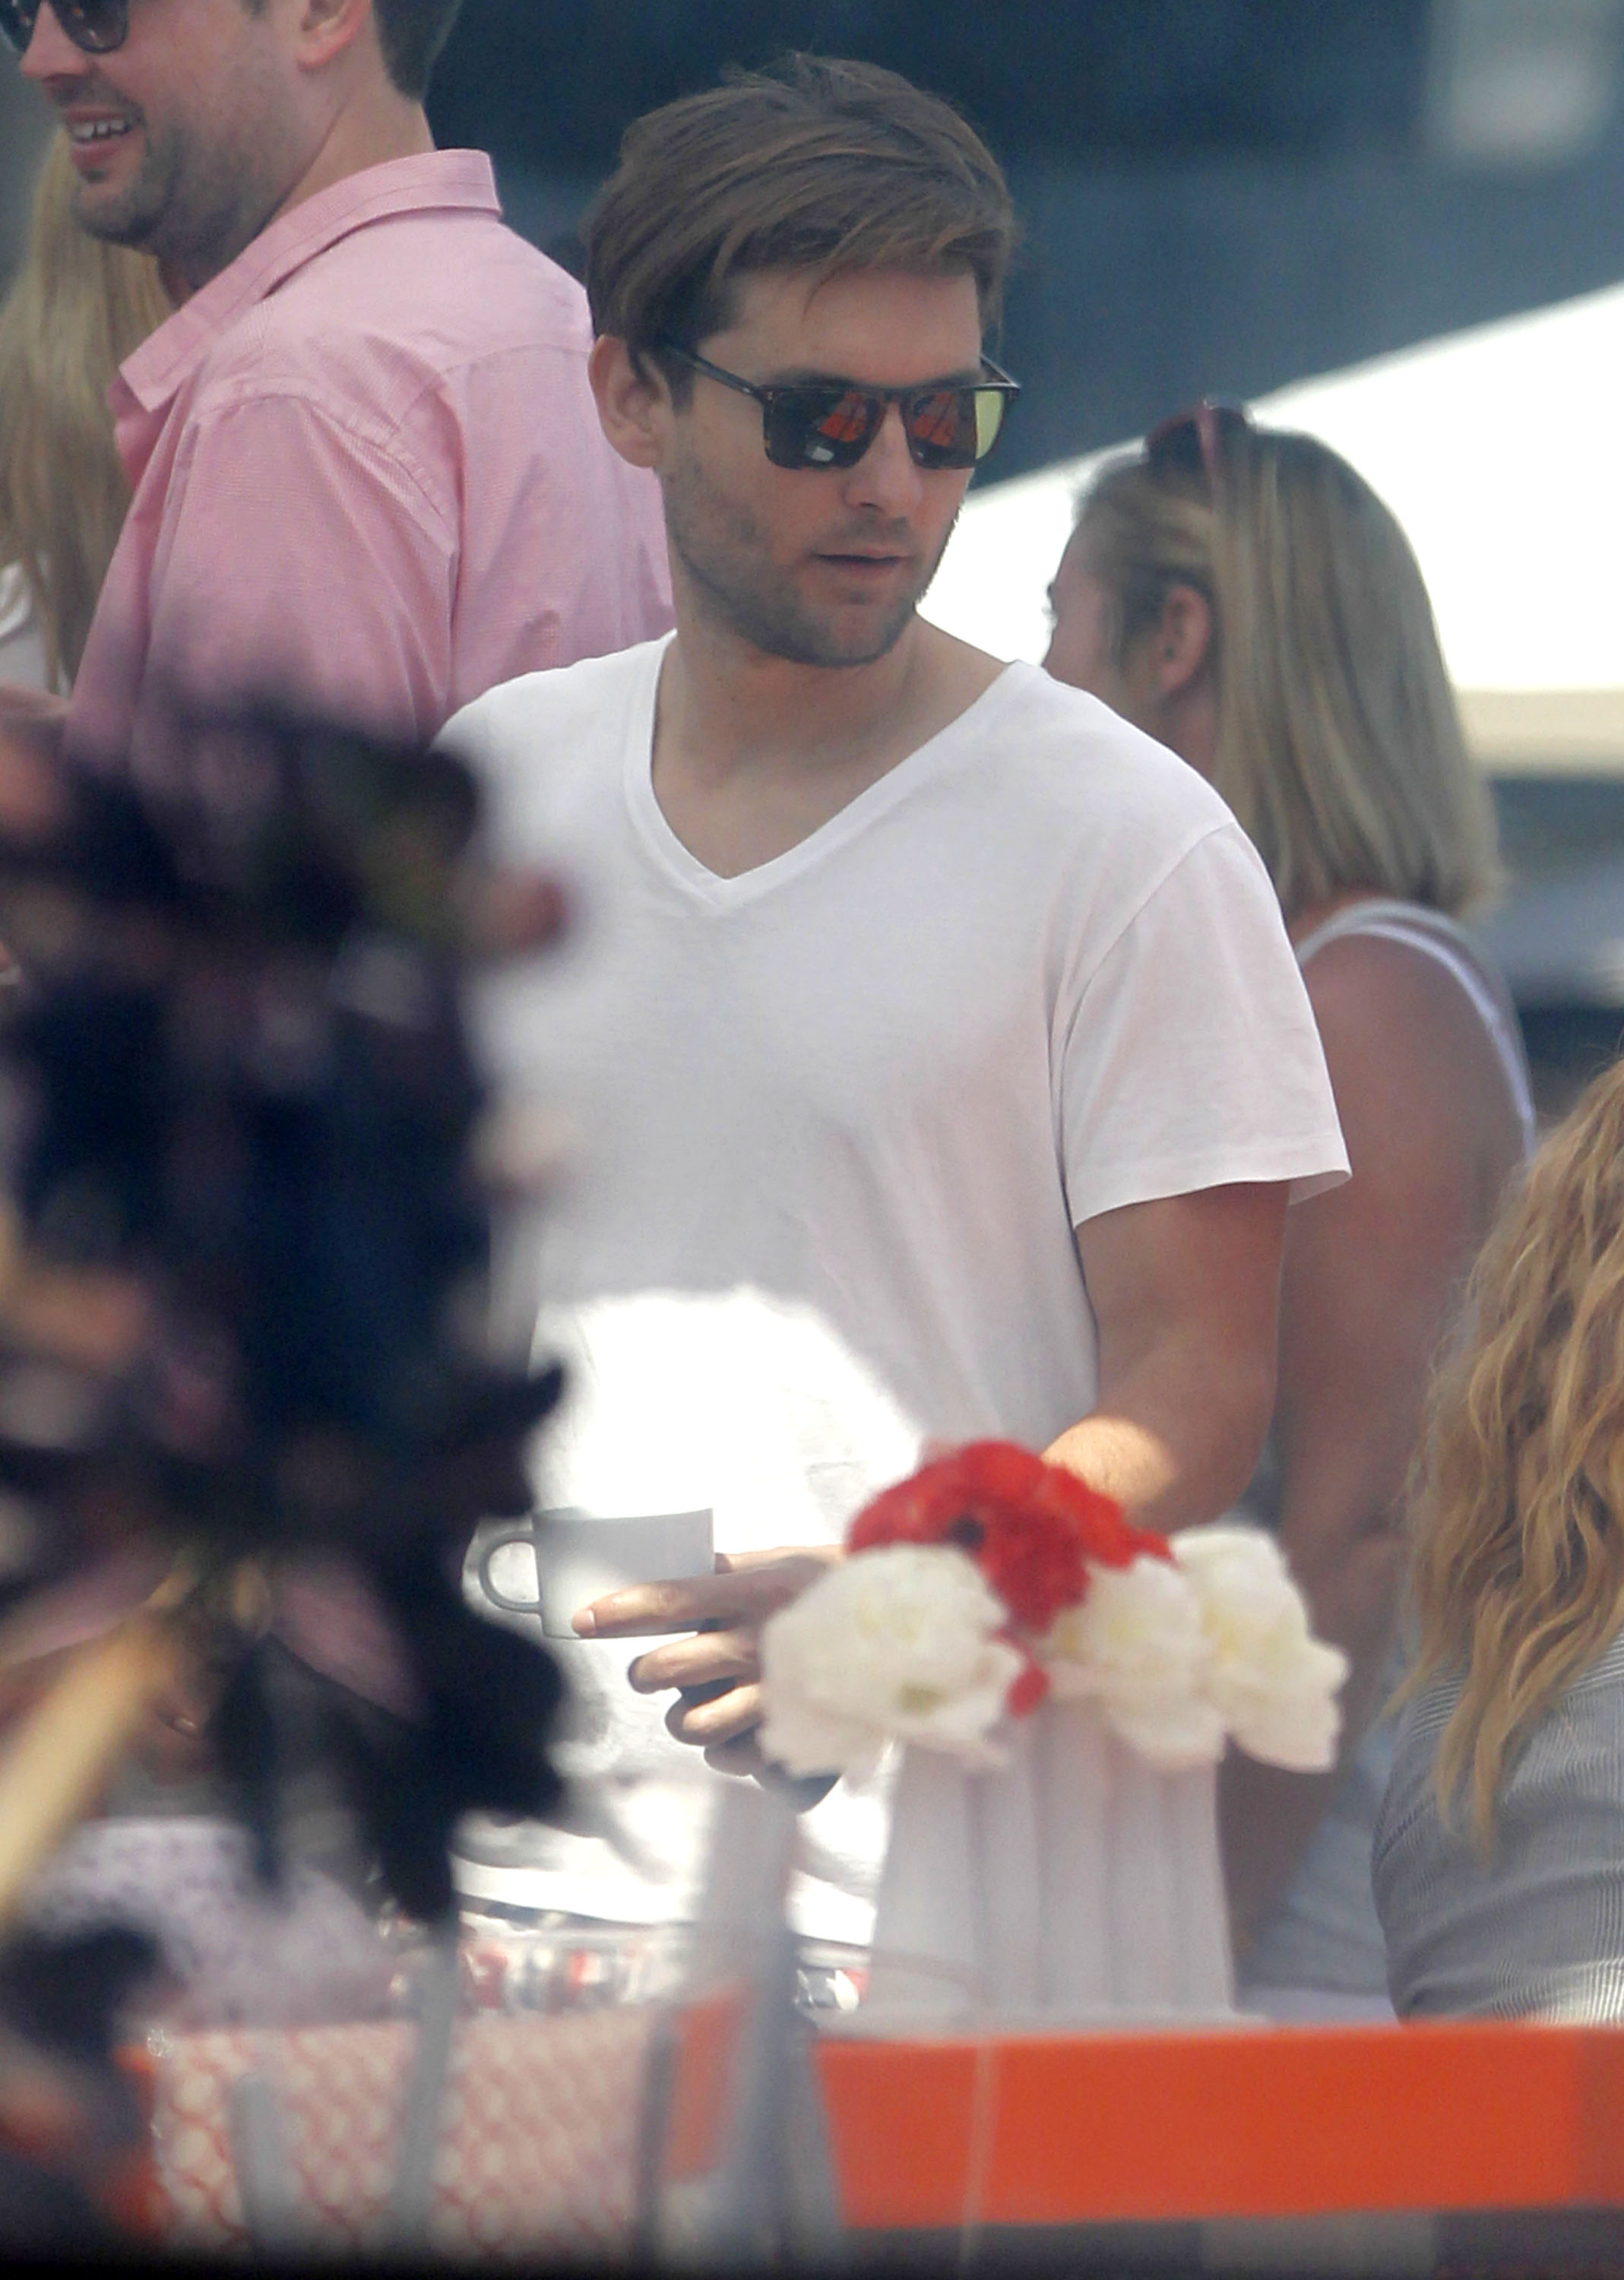 Tobey Maguire was a guest at a Memorial Day party at Joel Silver's house in LA.